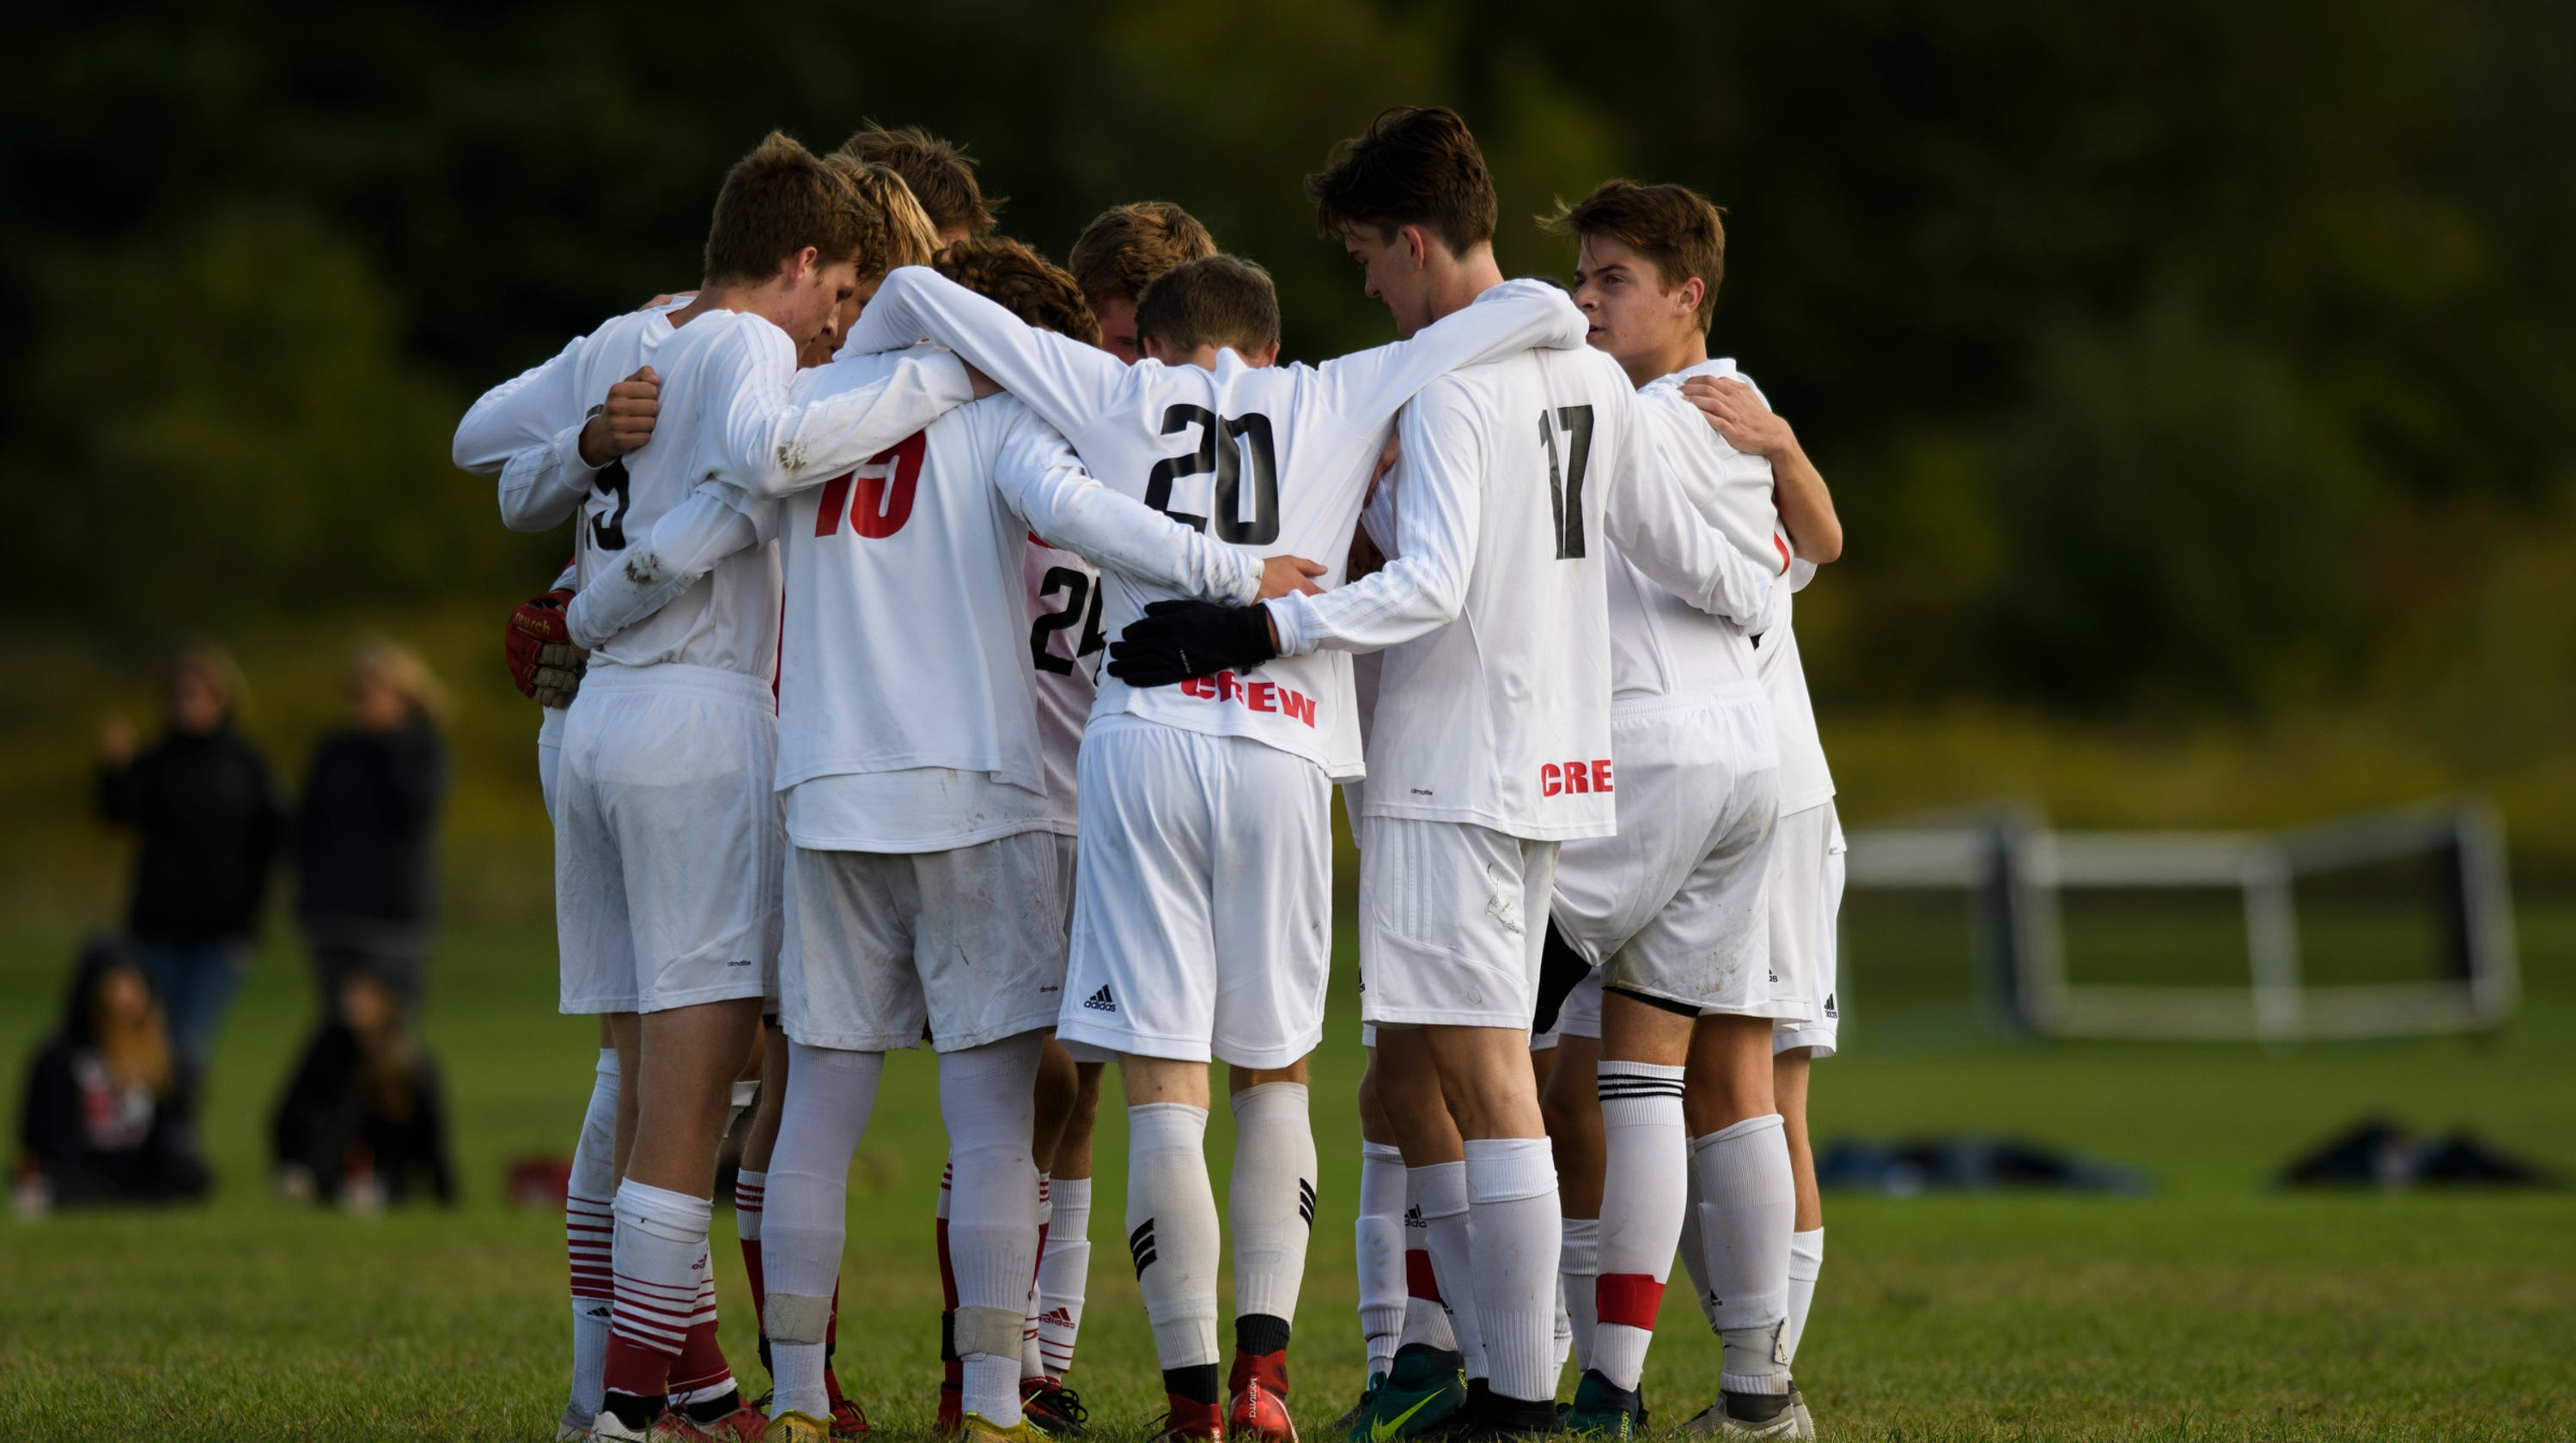 2018 Vermont high school boys soccer playoff primer and predictions